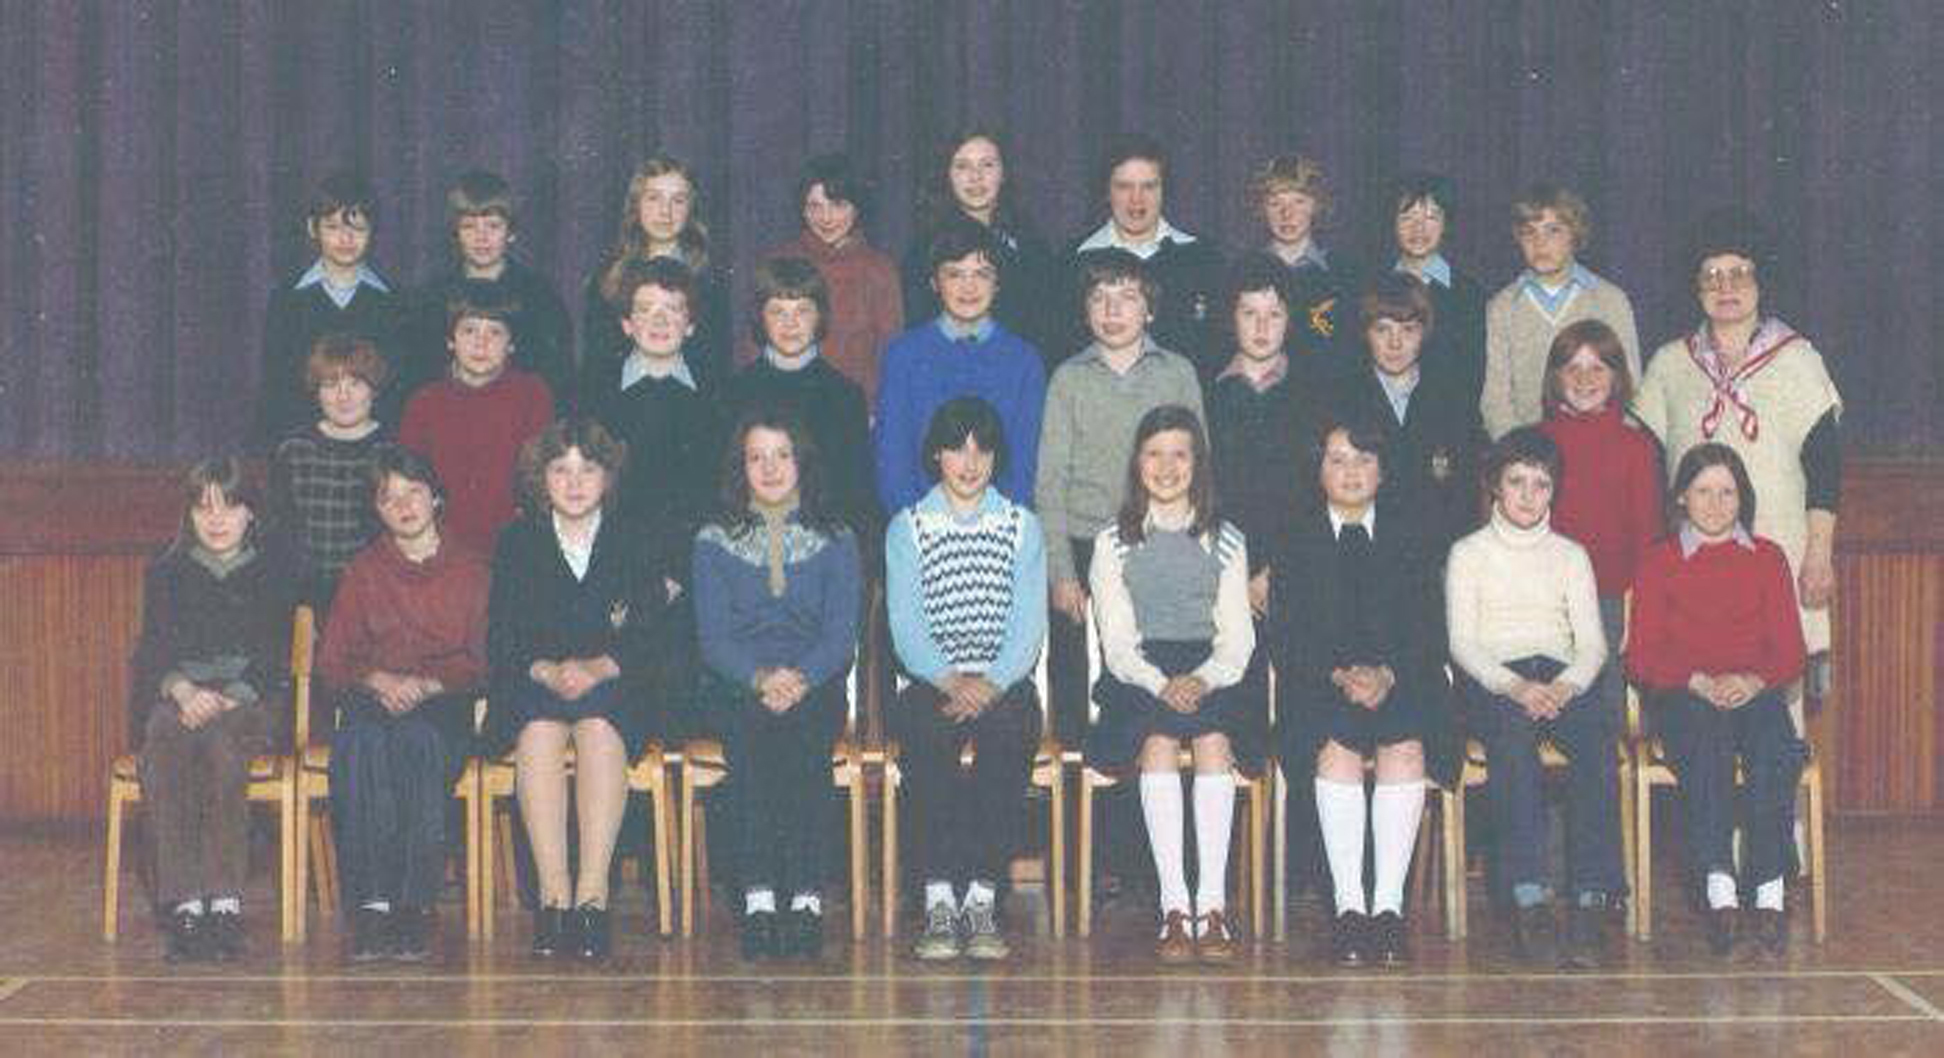 Summerhill Academy's class of 1978 to 1983, some of whom are pictured, will be meeting up again.